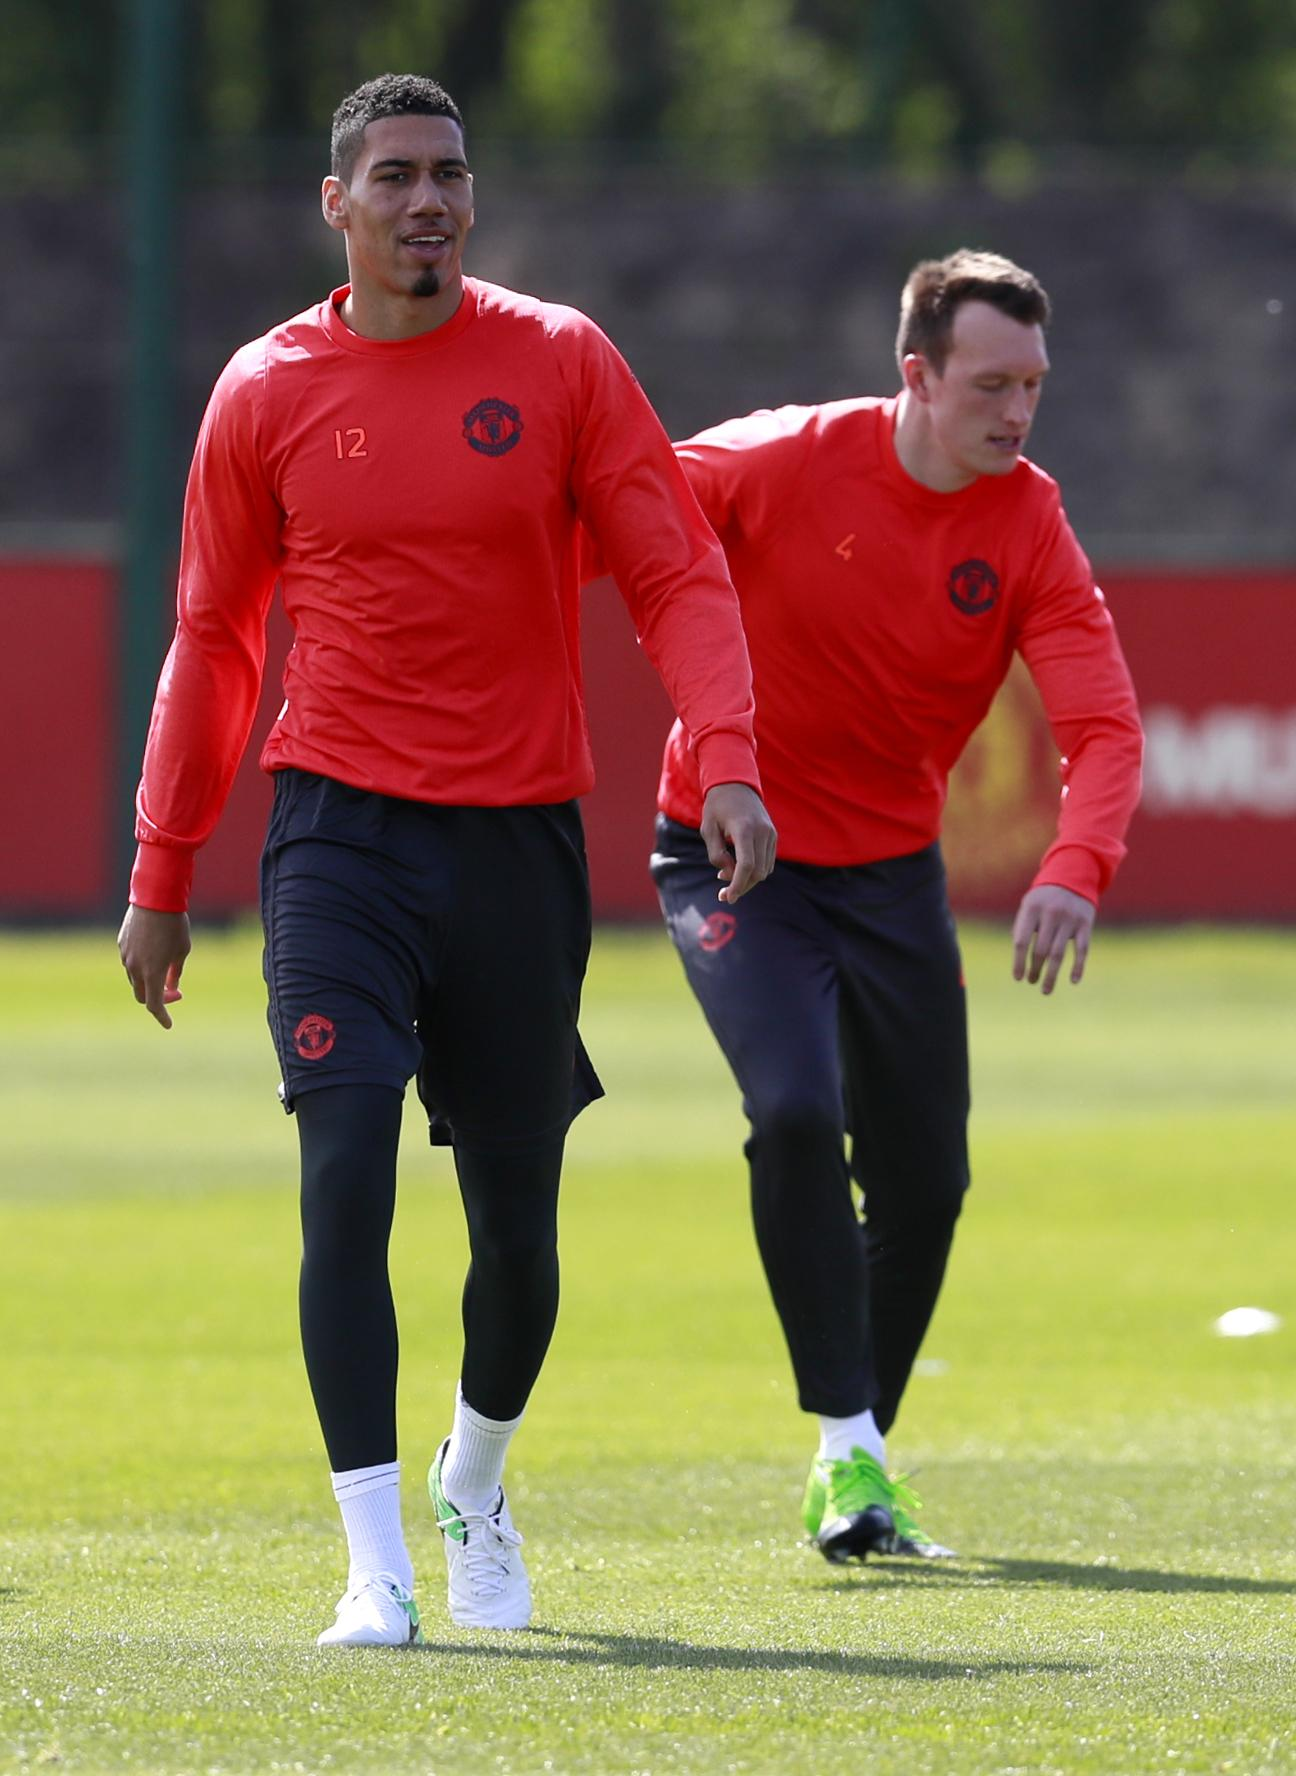 Should we disappointed by the development of Smalling and Jones?